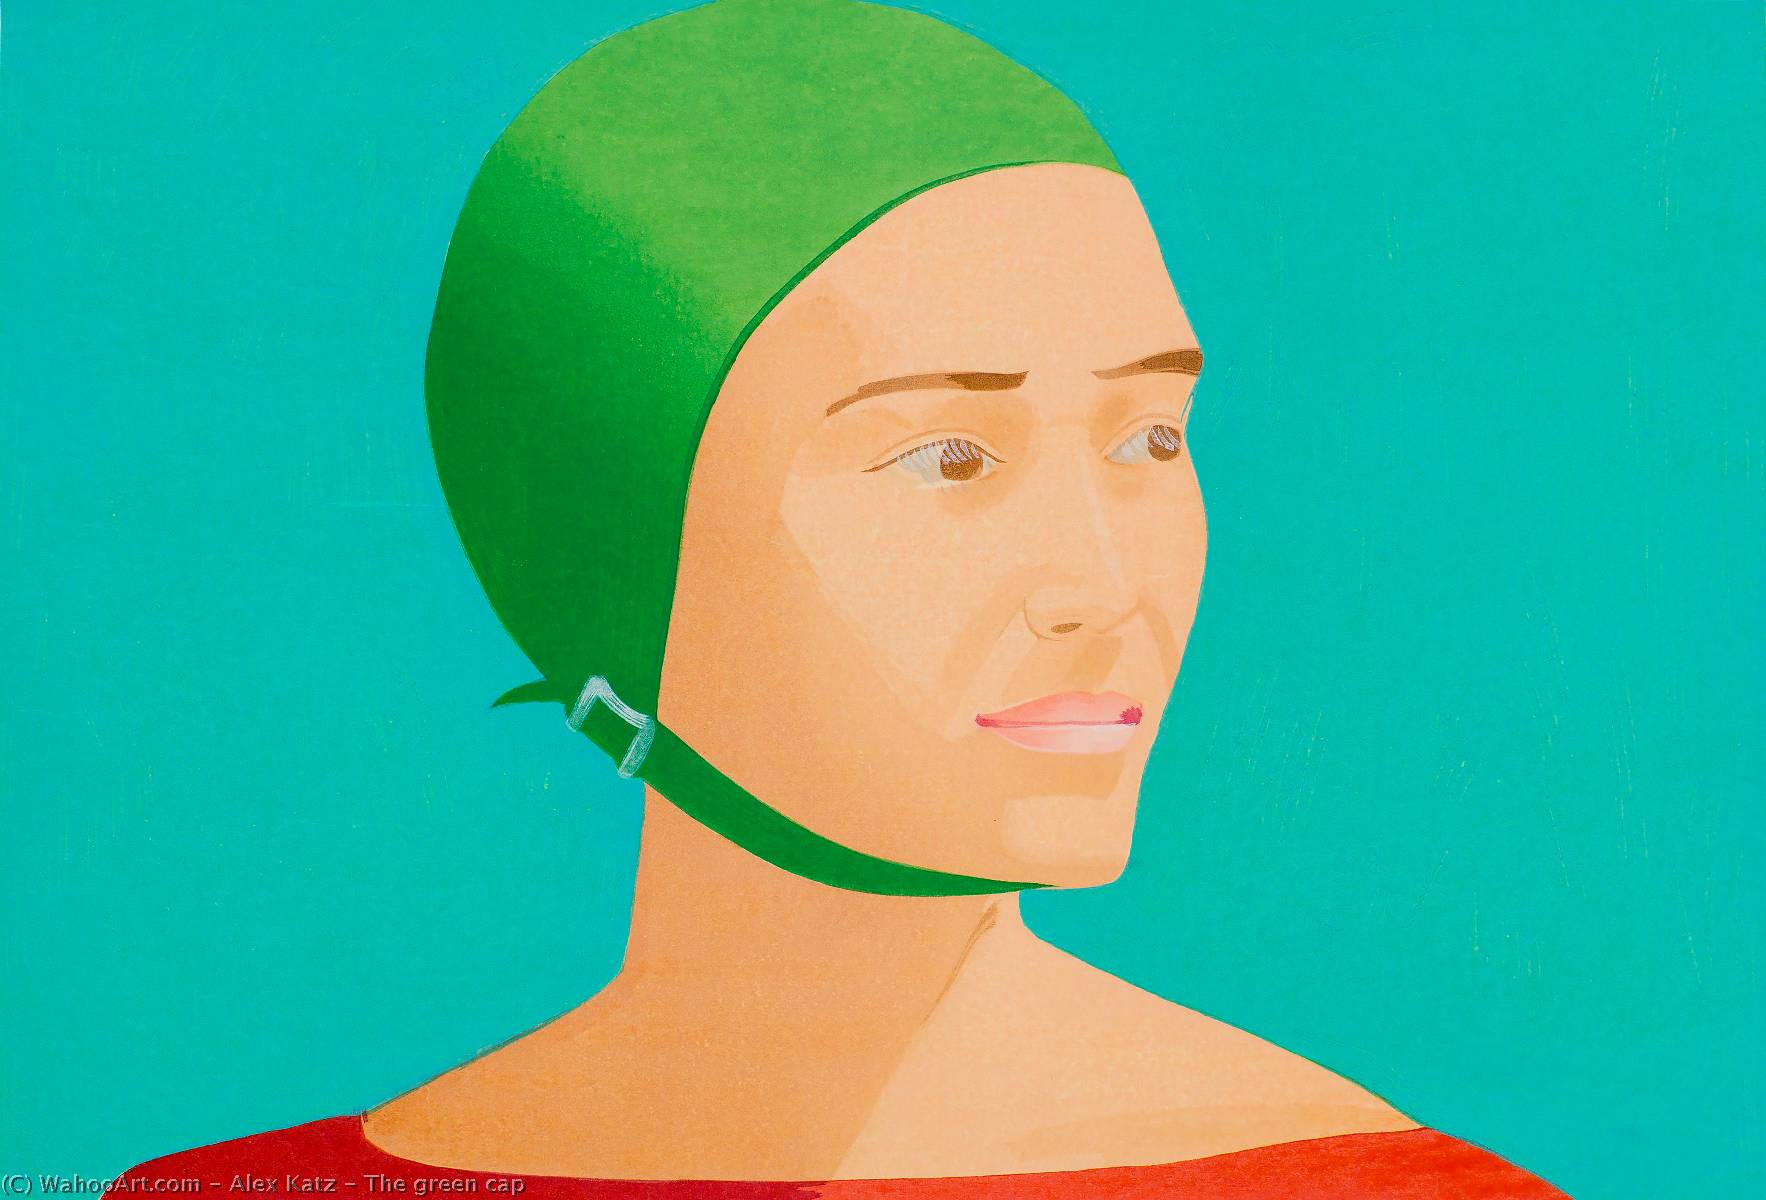 famous painting The green cap of Alex Katz